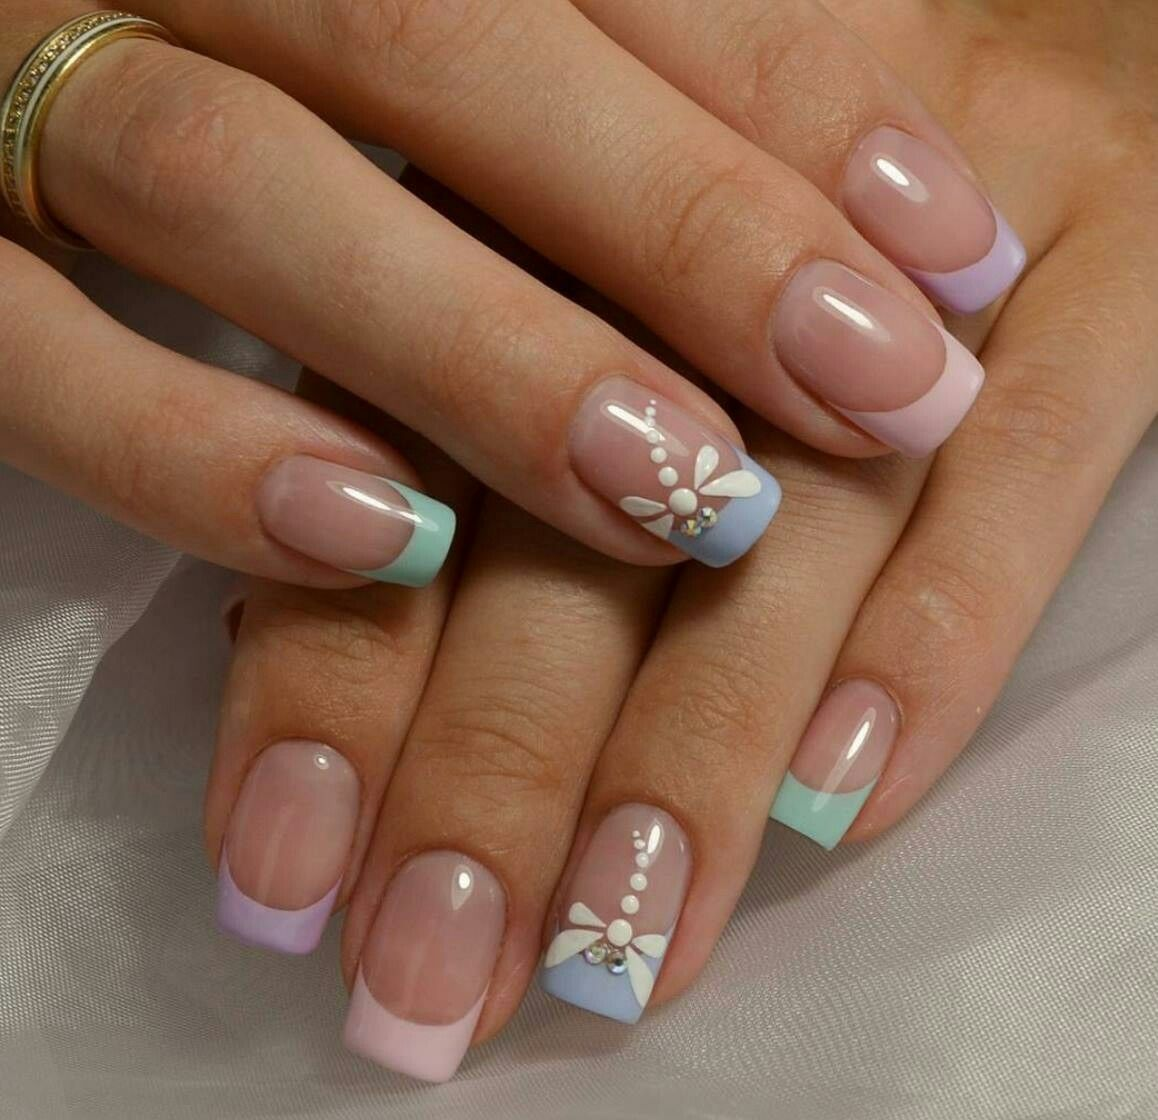 Pin by Kristi Tate on nails   Pinterest   French manicure designs ...